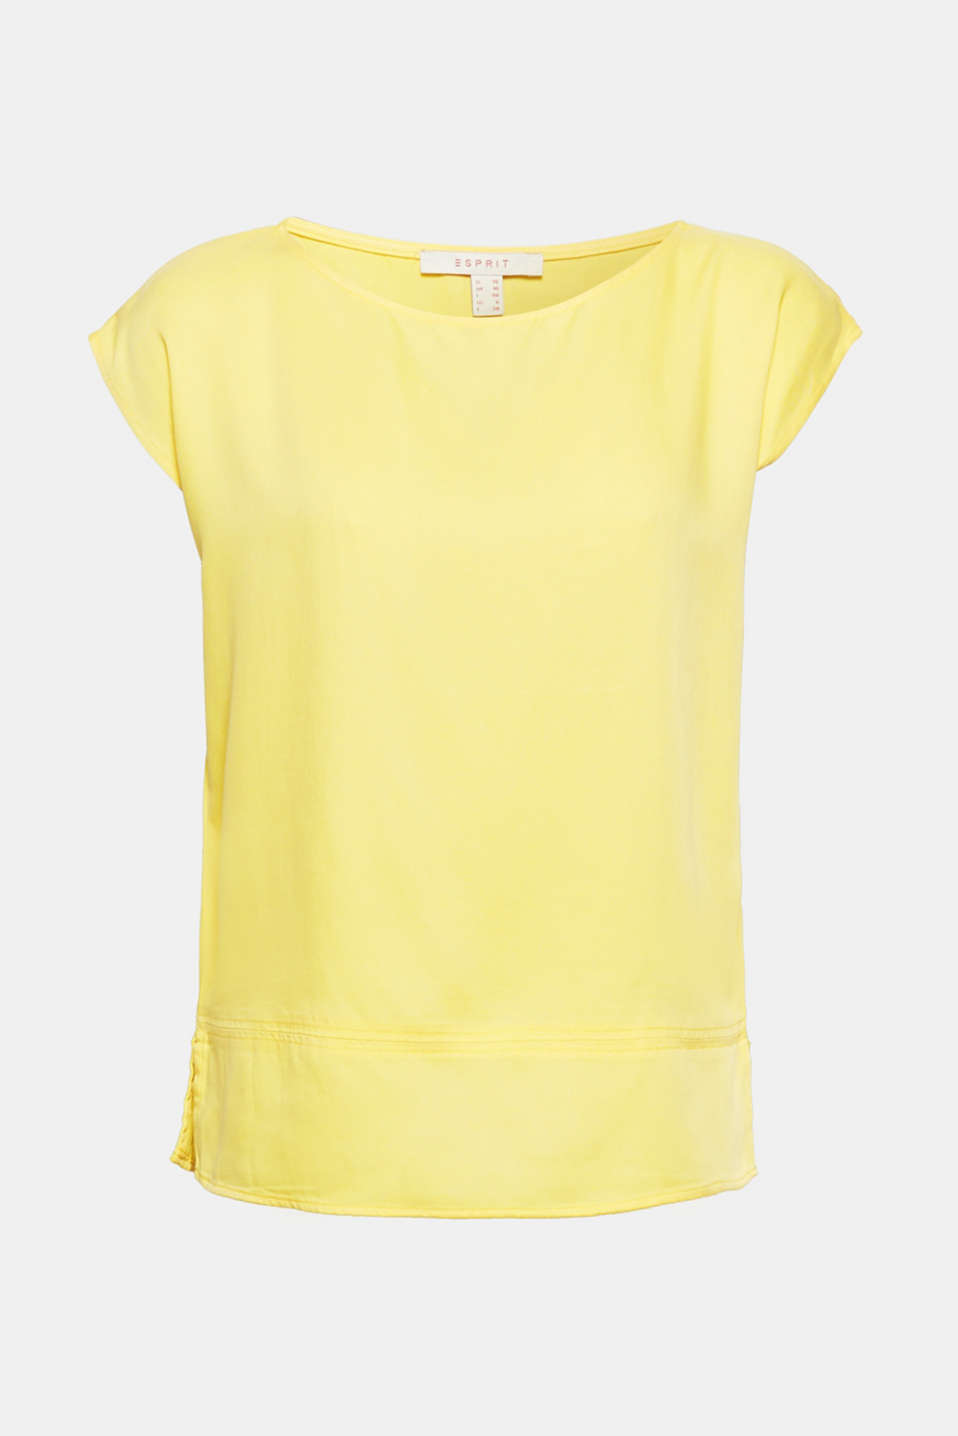 Gives your look the perfect summery boost: fashionable blouse top in luminous yellow made of soft draped fine textured lyocell.